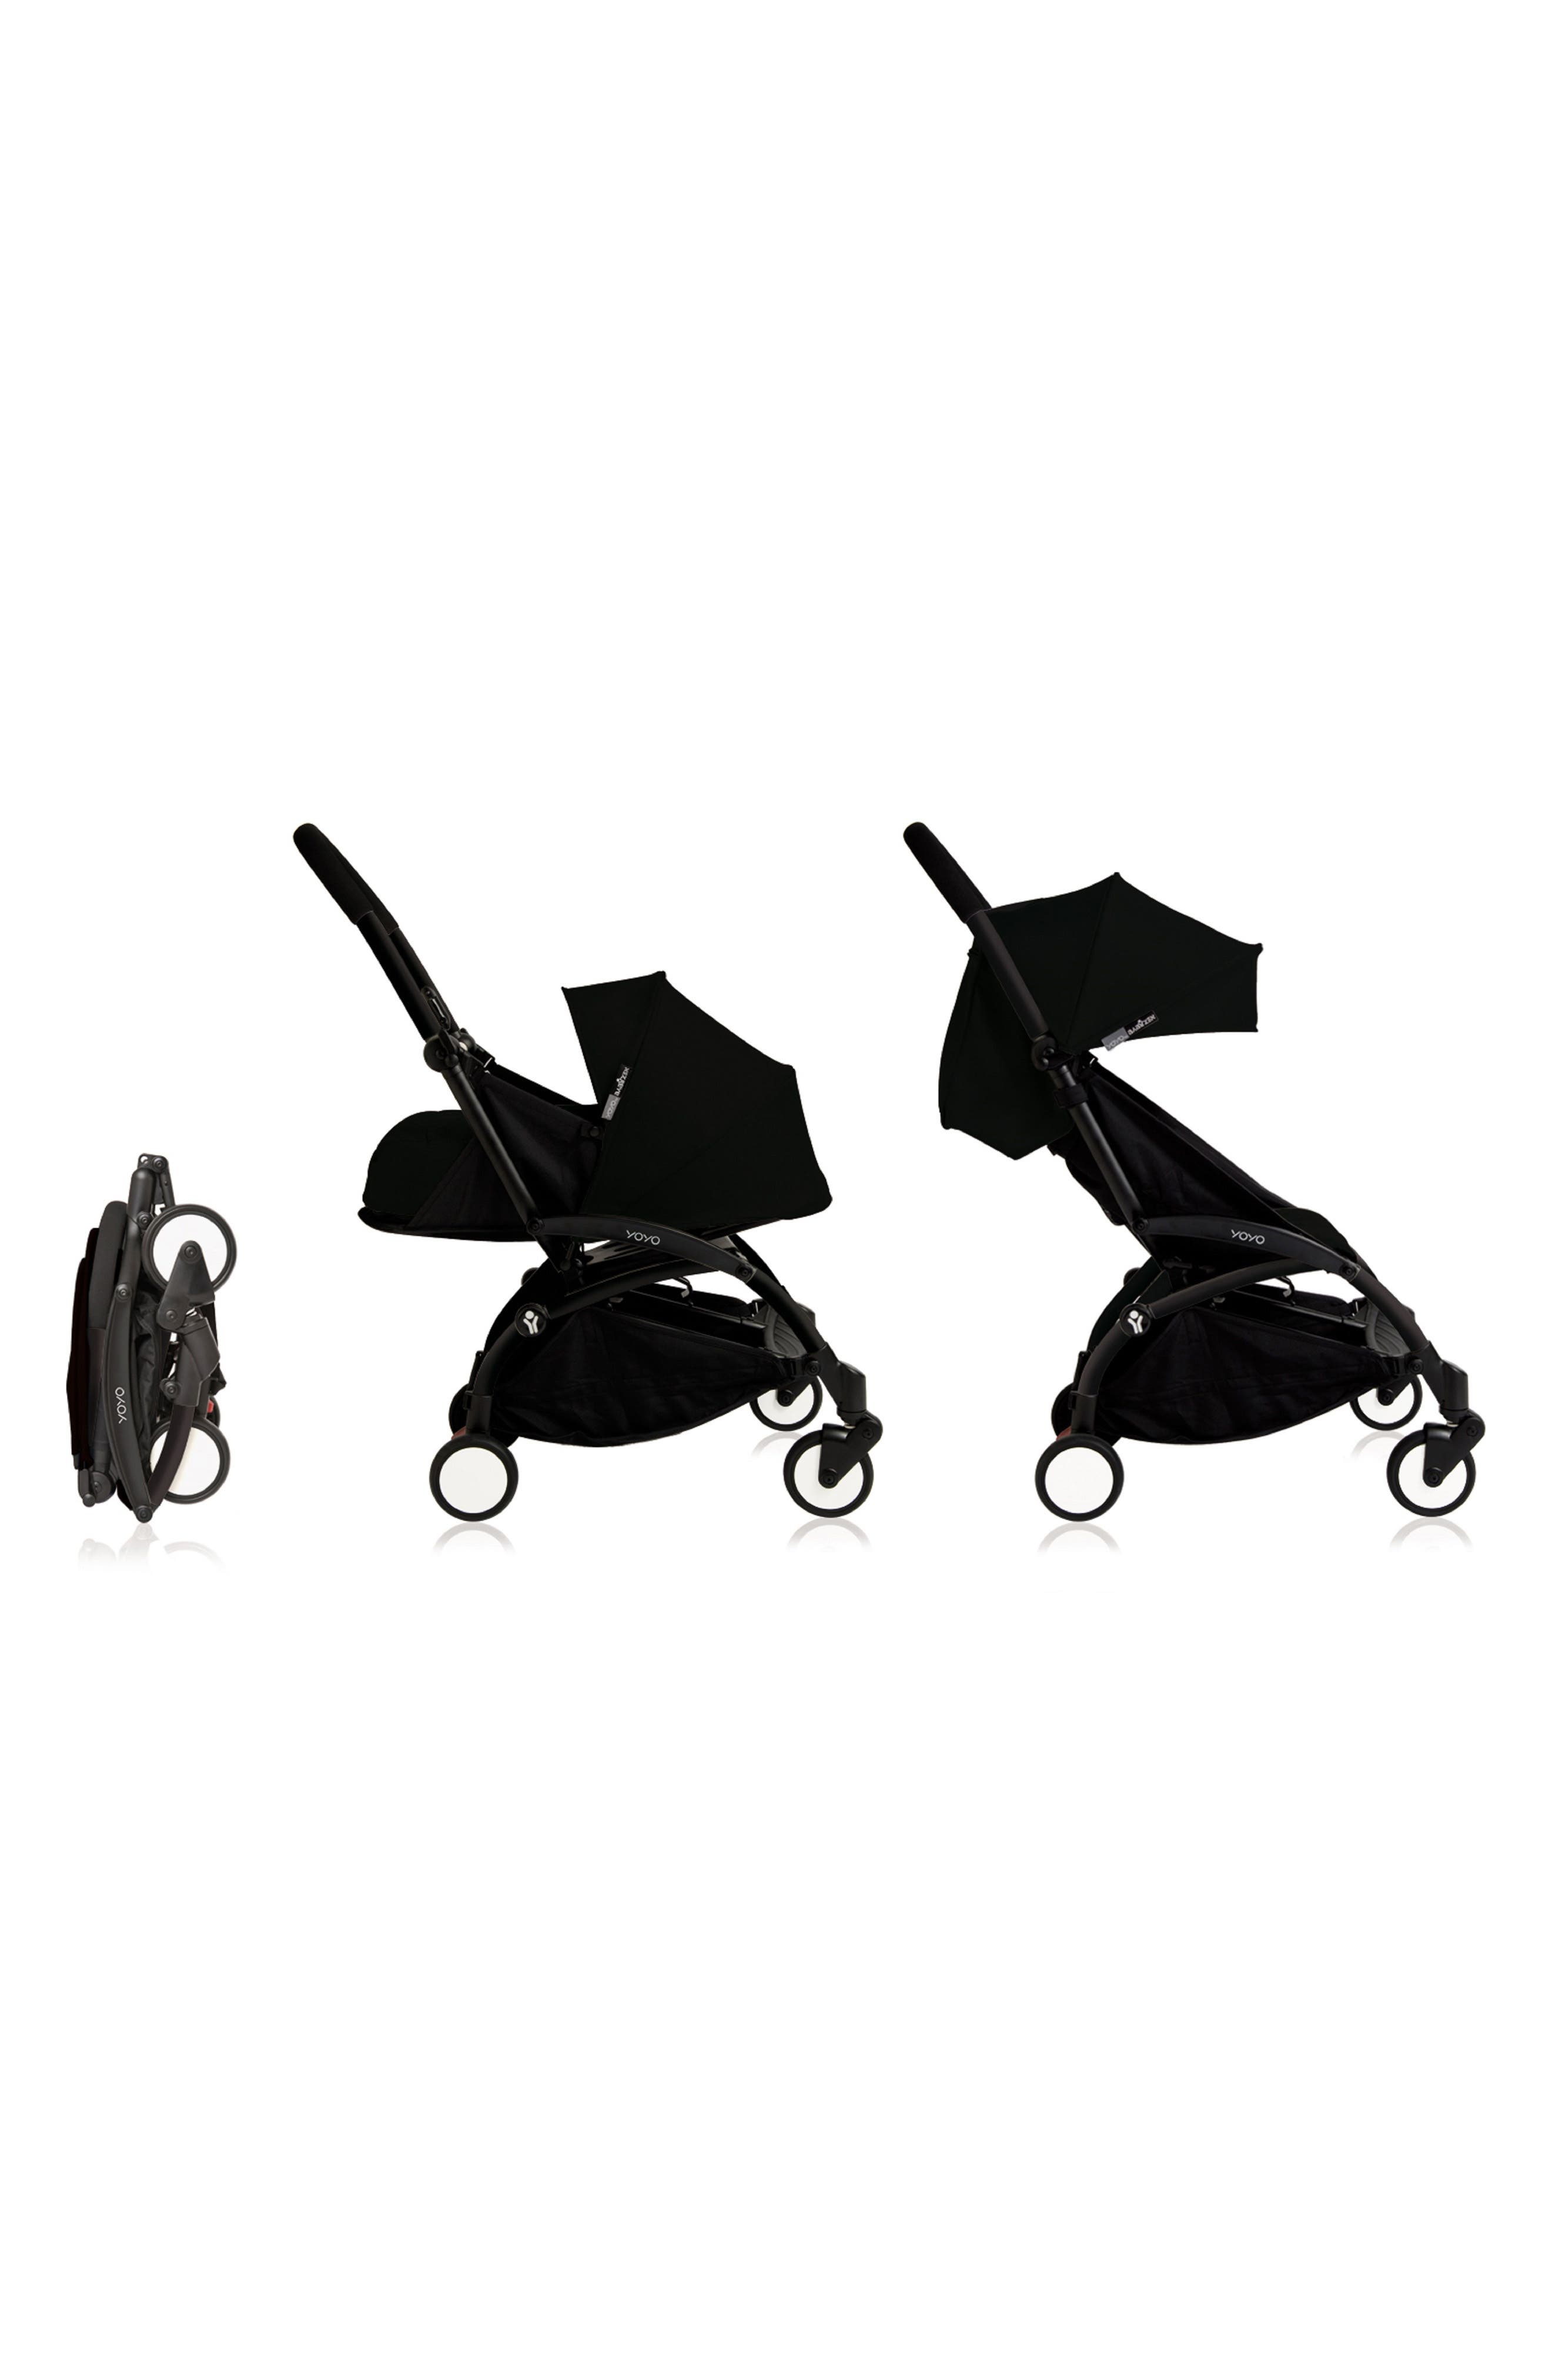 BABYZEN YOYO+ Complete Stroller with Newborn Color Pack Fabric Set,                             Alternate thumbnail 2, color,                             BLACK